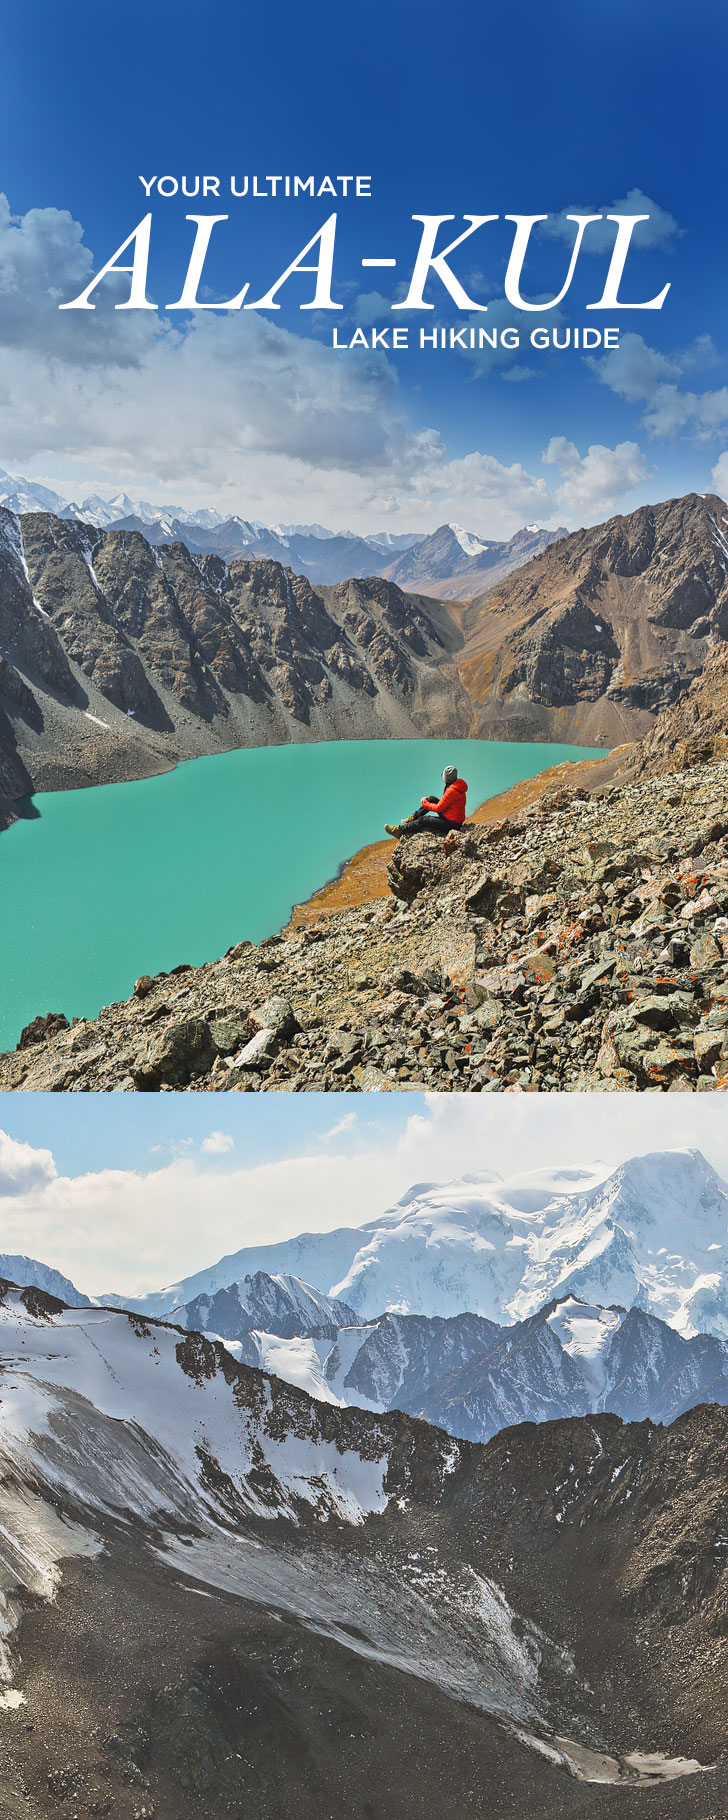 Trekking Kyrgyzstan - Your Complete Guide to the Lake Ala-Kul Hike // localadventurer.com